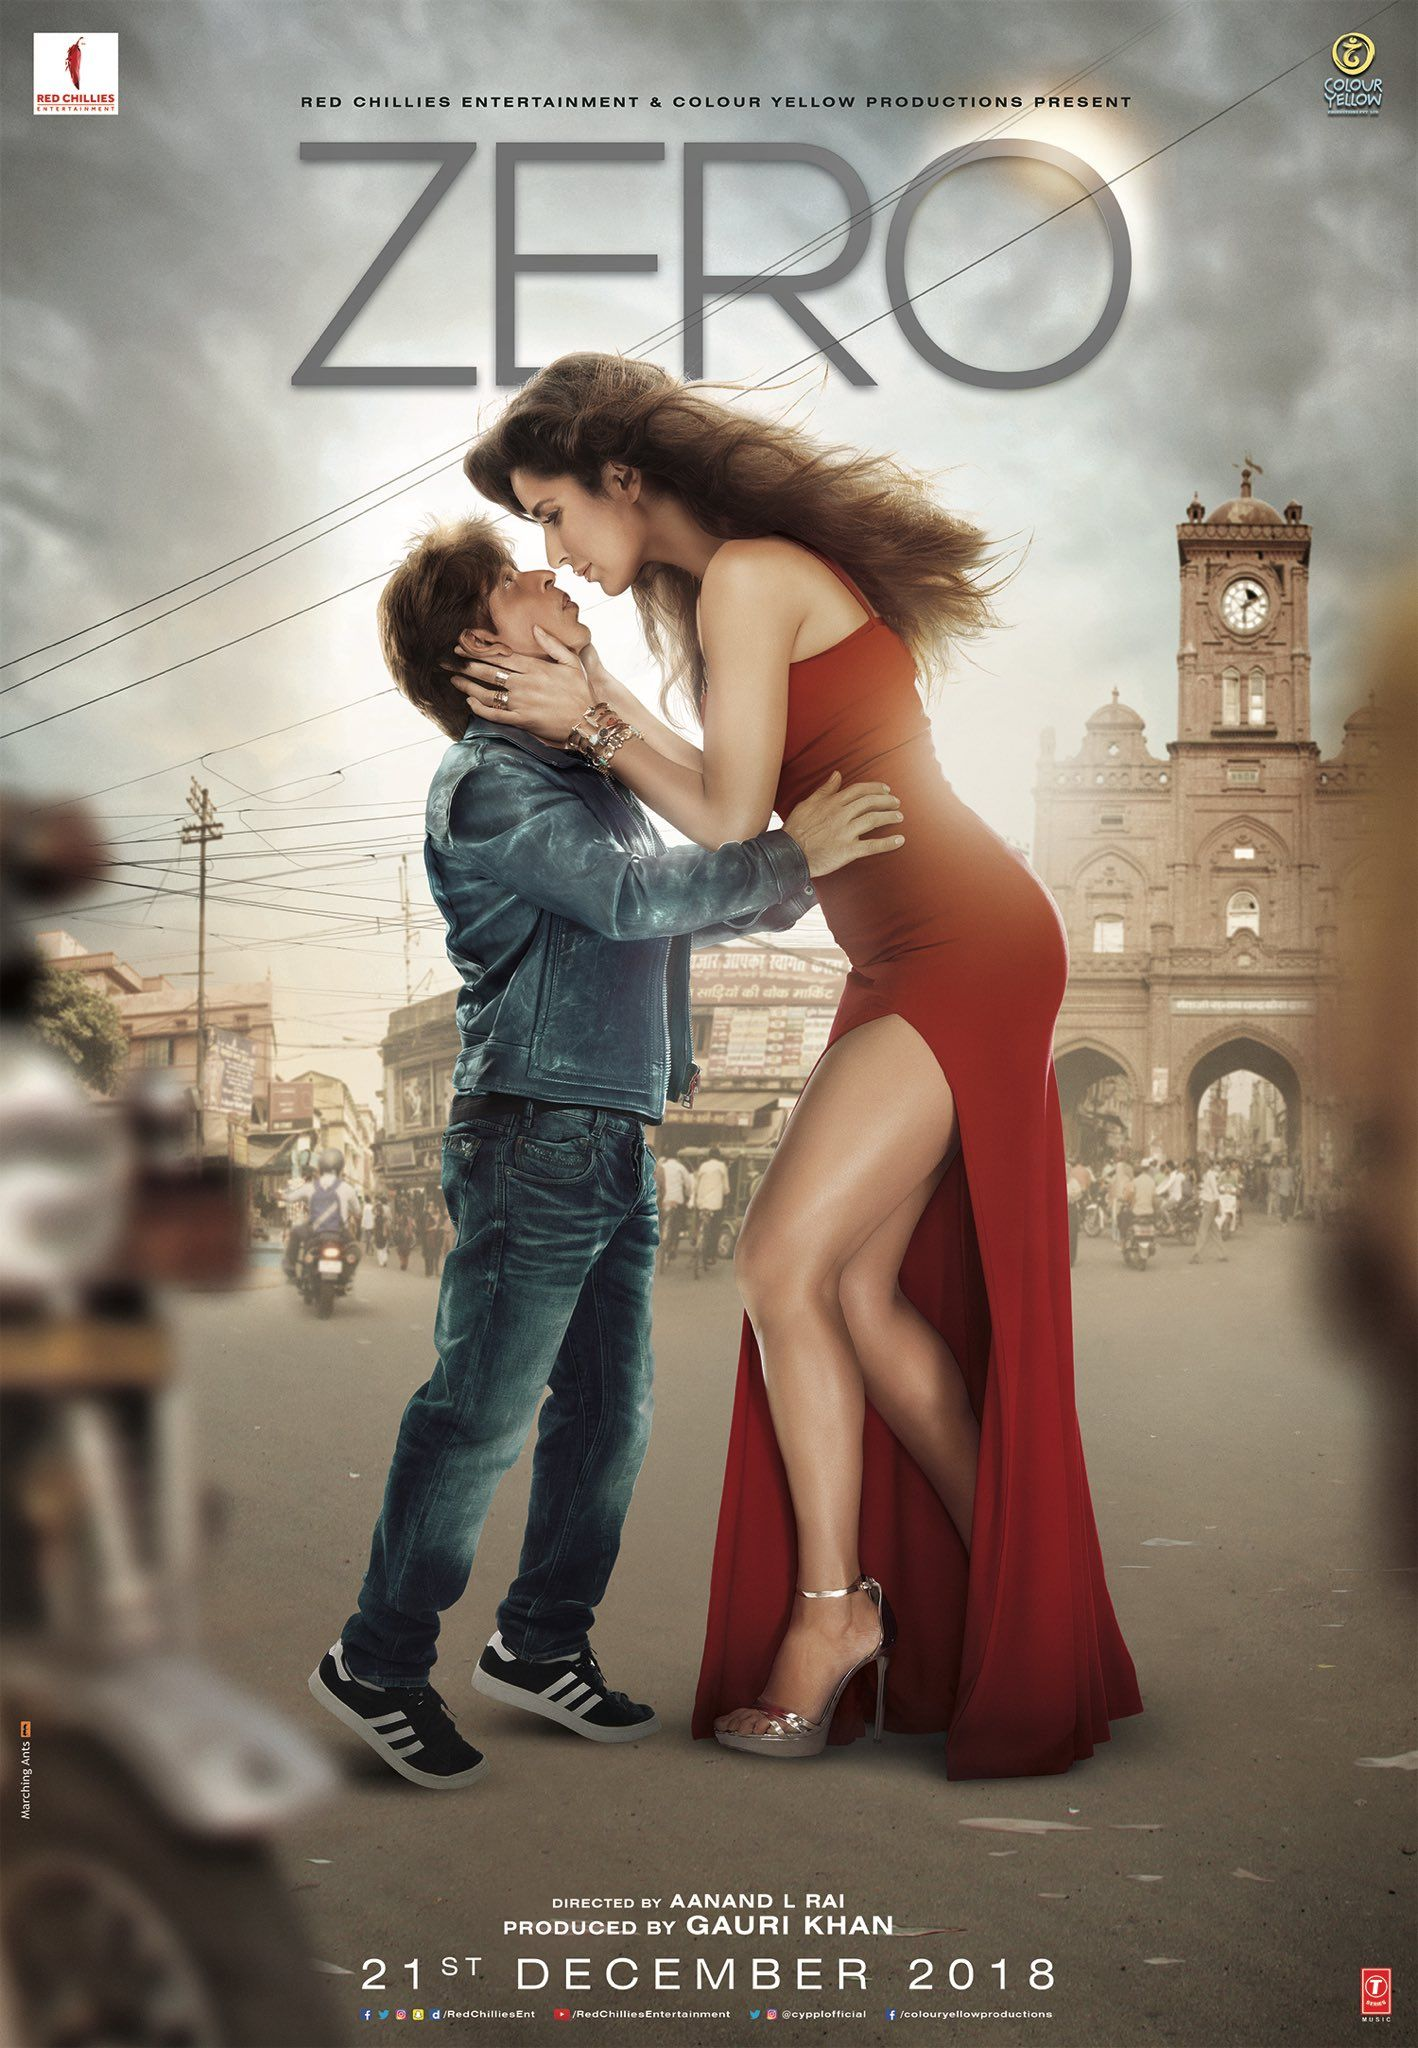 Zero Zeroposter Shahrukhkhan Katrinakaif Anushkasharma First Look New Posters Aanandl Full Movies Online Free Full Movies Online Streaming Movies Online